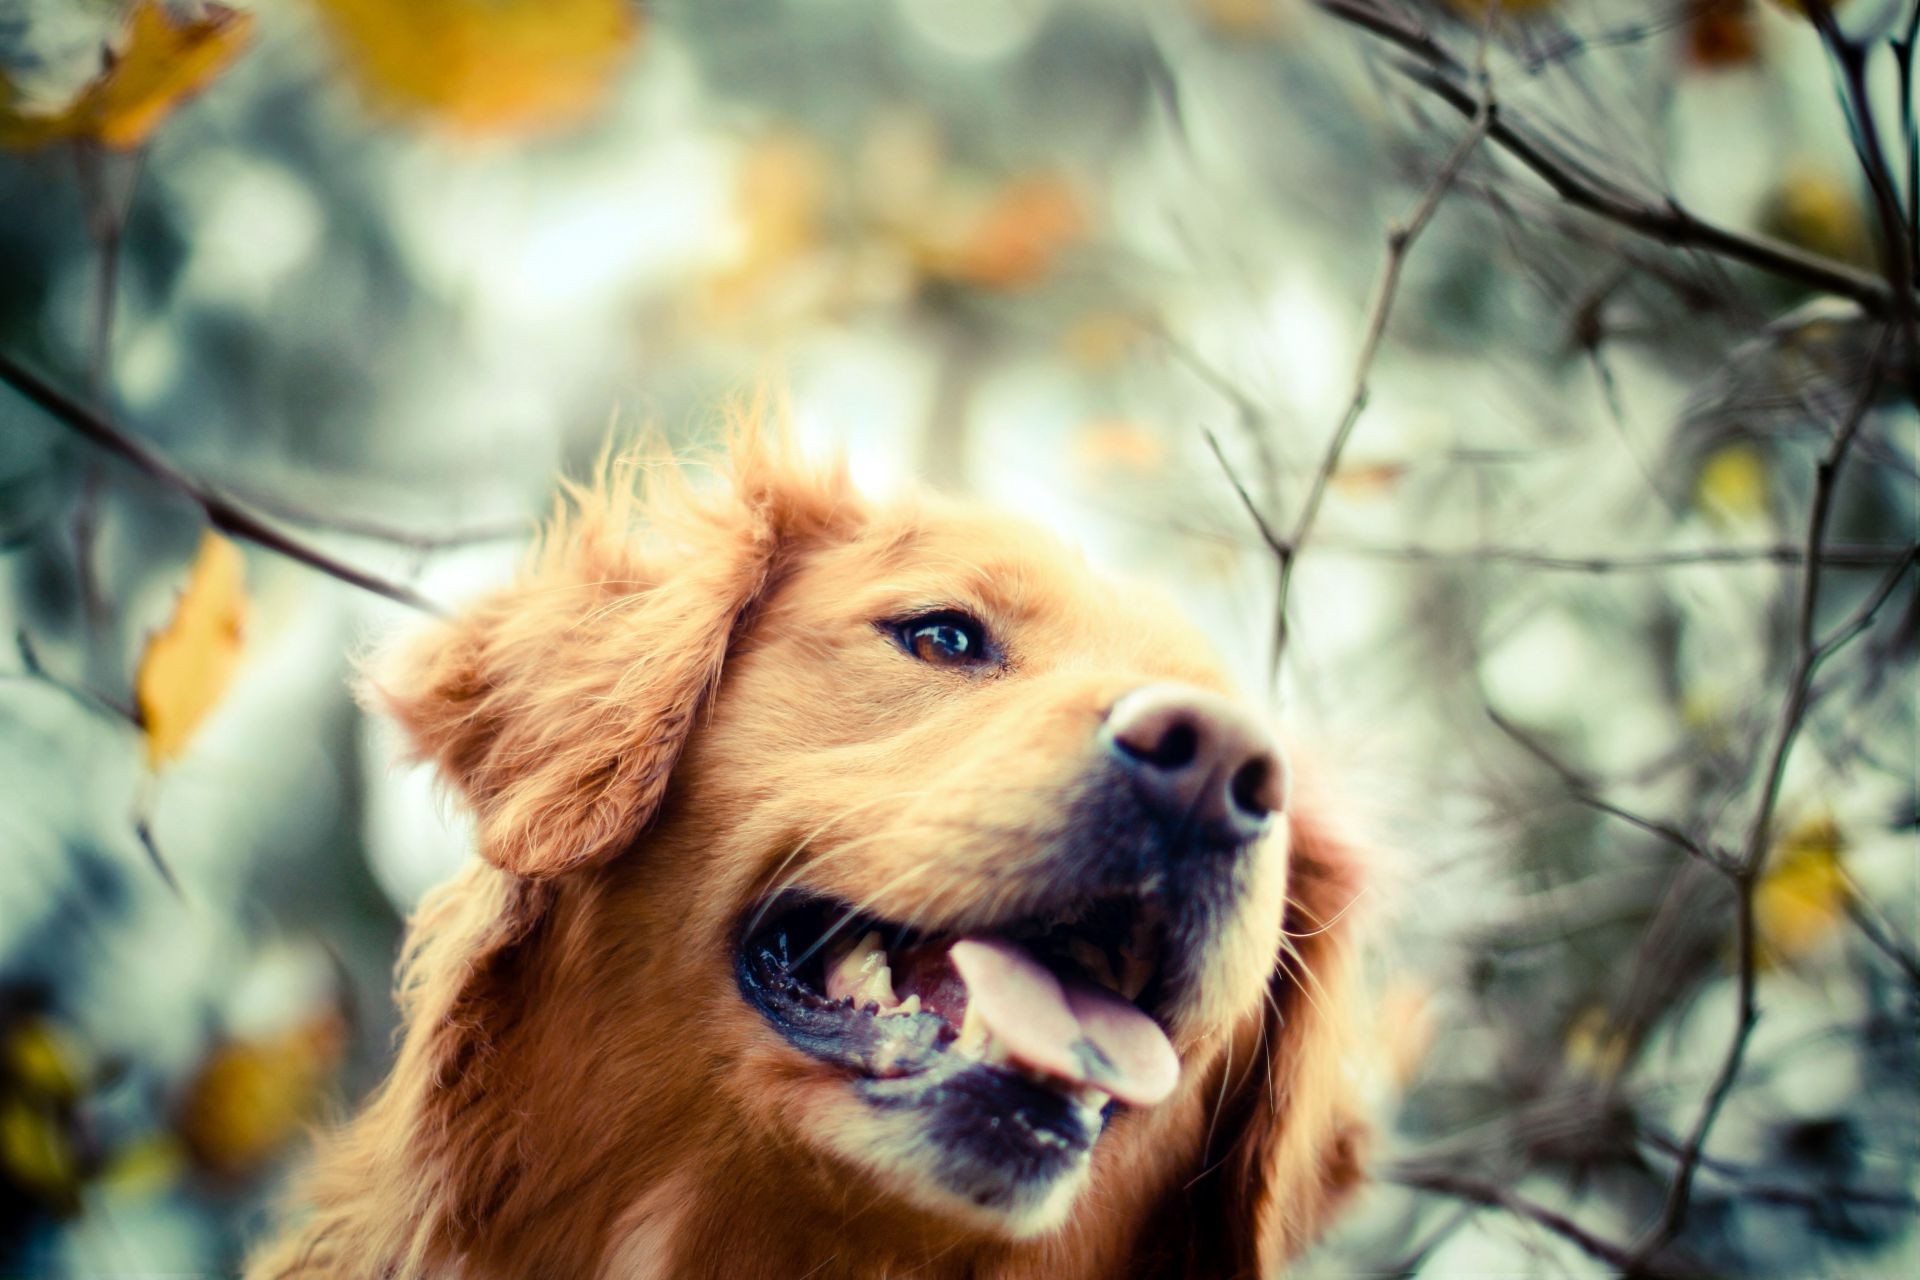 dogs mammal portrait pet dog animal cute fur outdoors canine nature